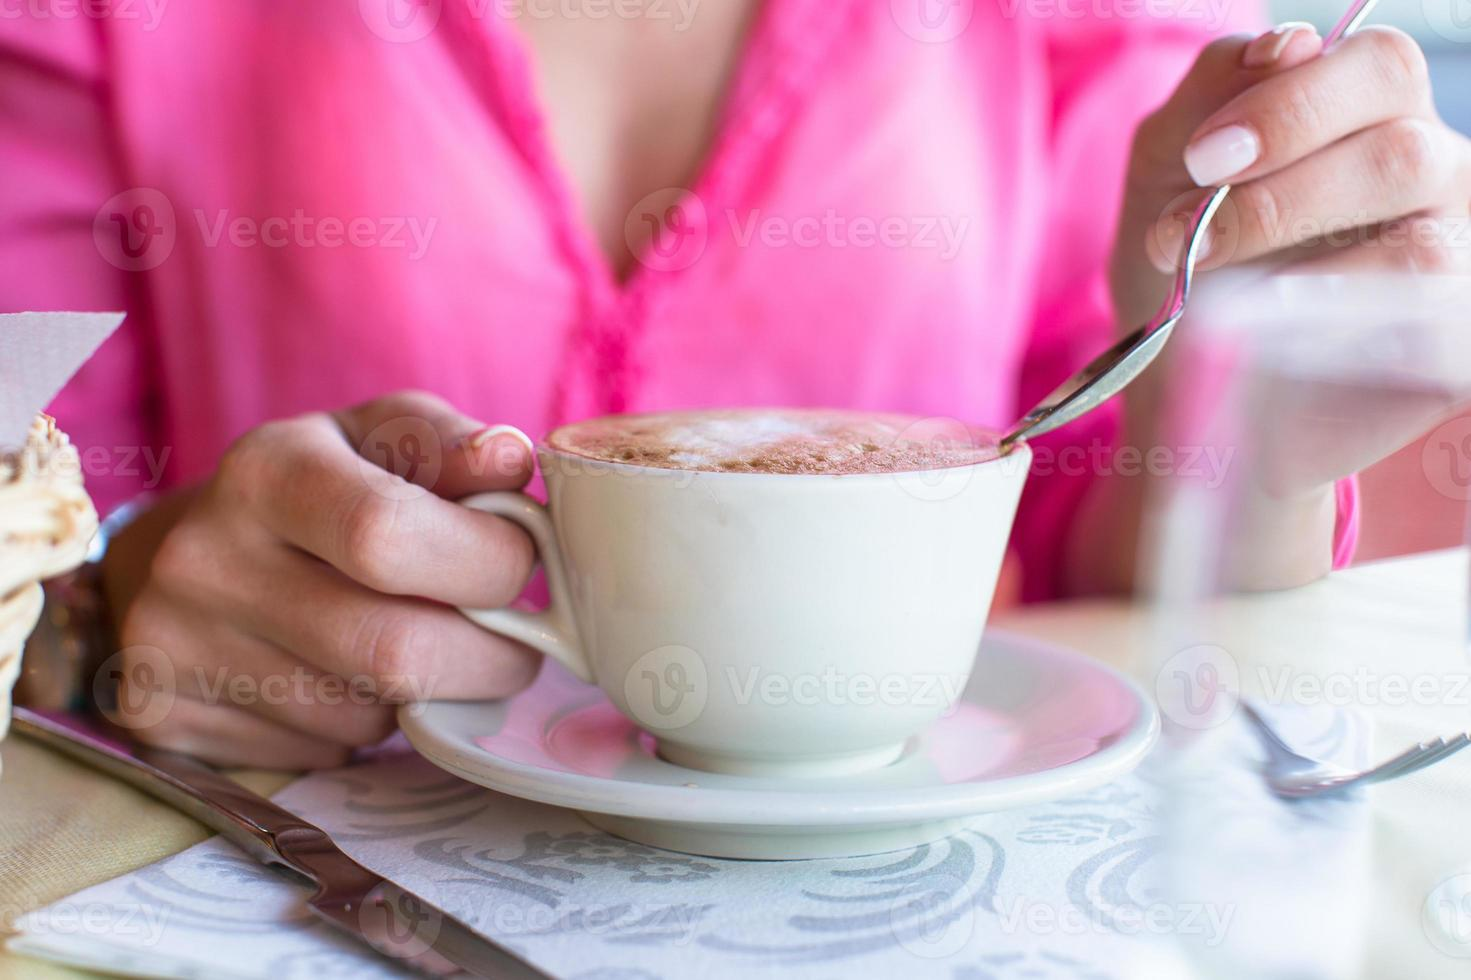 Delicious And Tasty Cappuccino For Breakfast At A Cafe Stock Photo